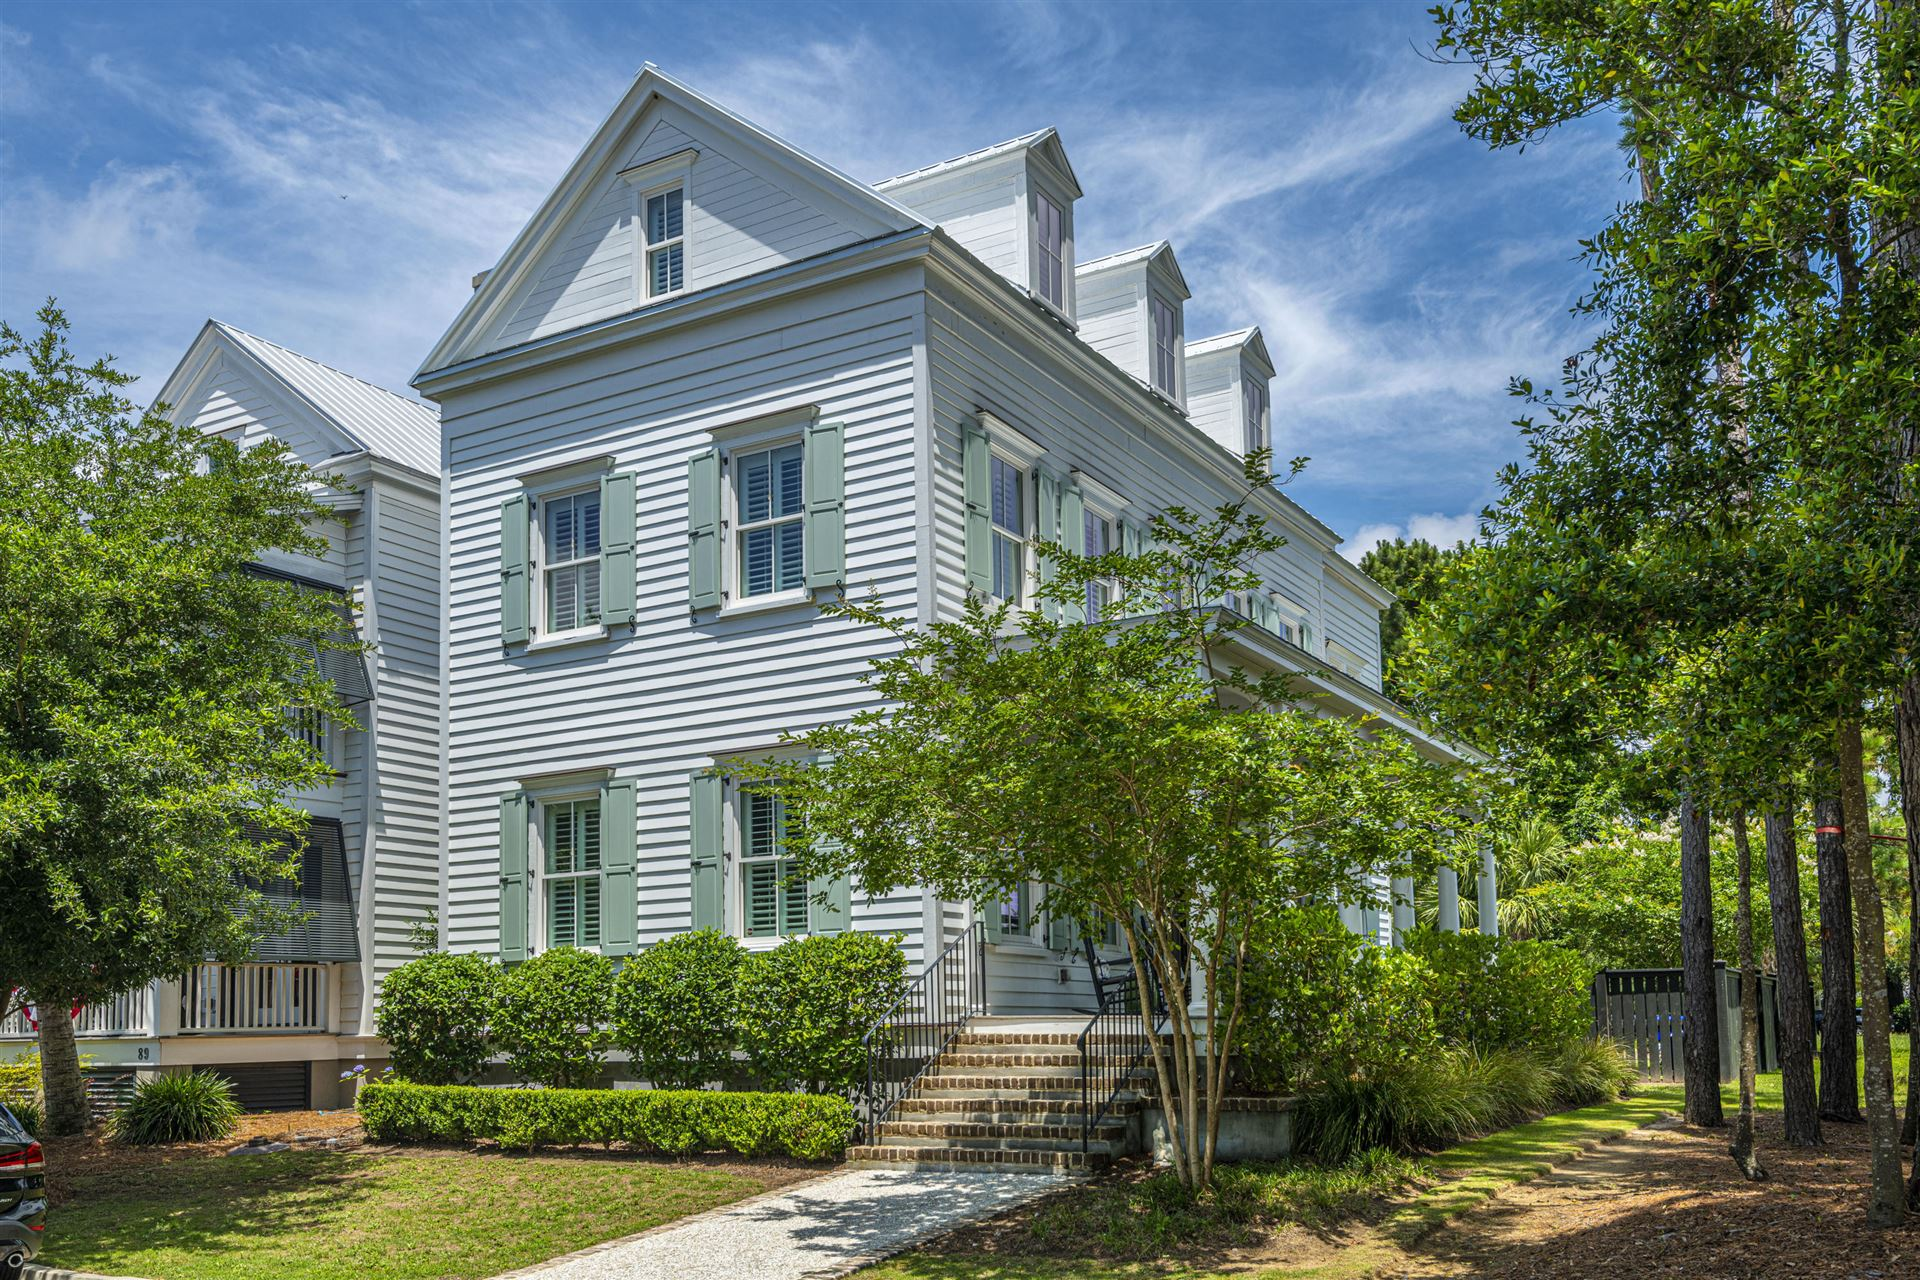 Photo of 93 Jane Jacobs Street, Mount Pleasant, SC 29464 (MLS # 20014103)